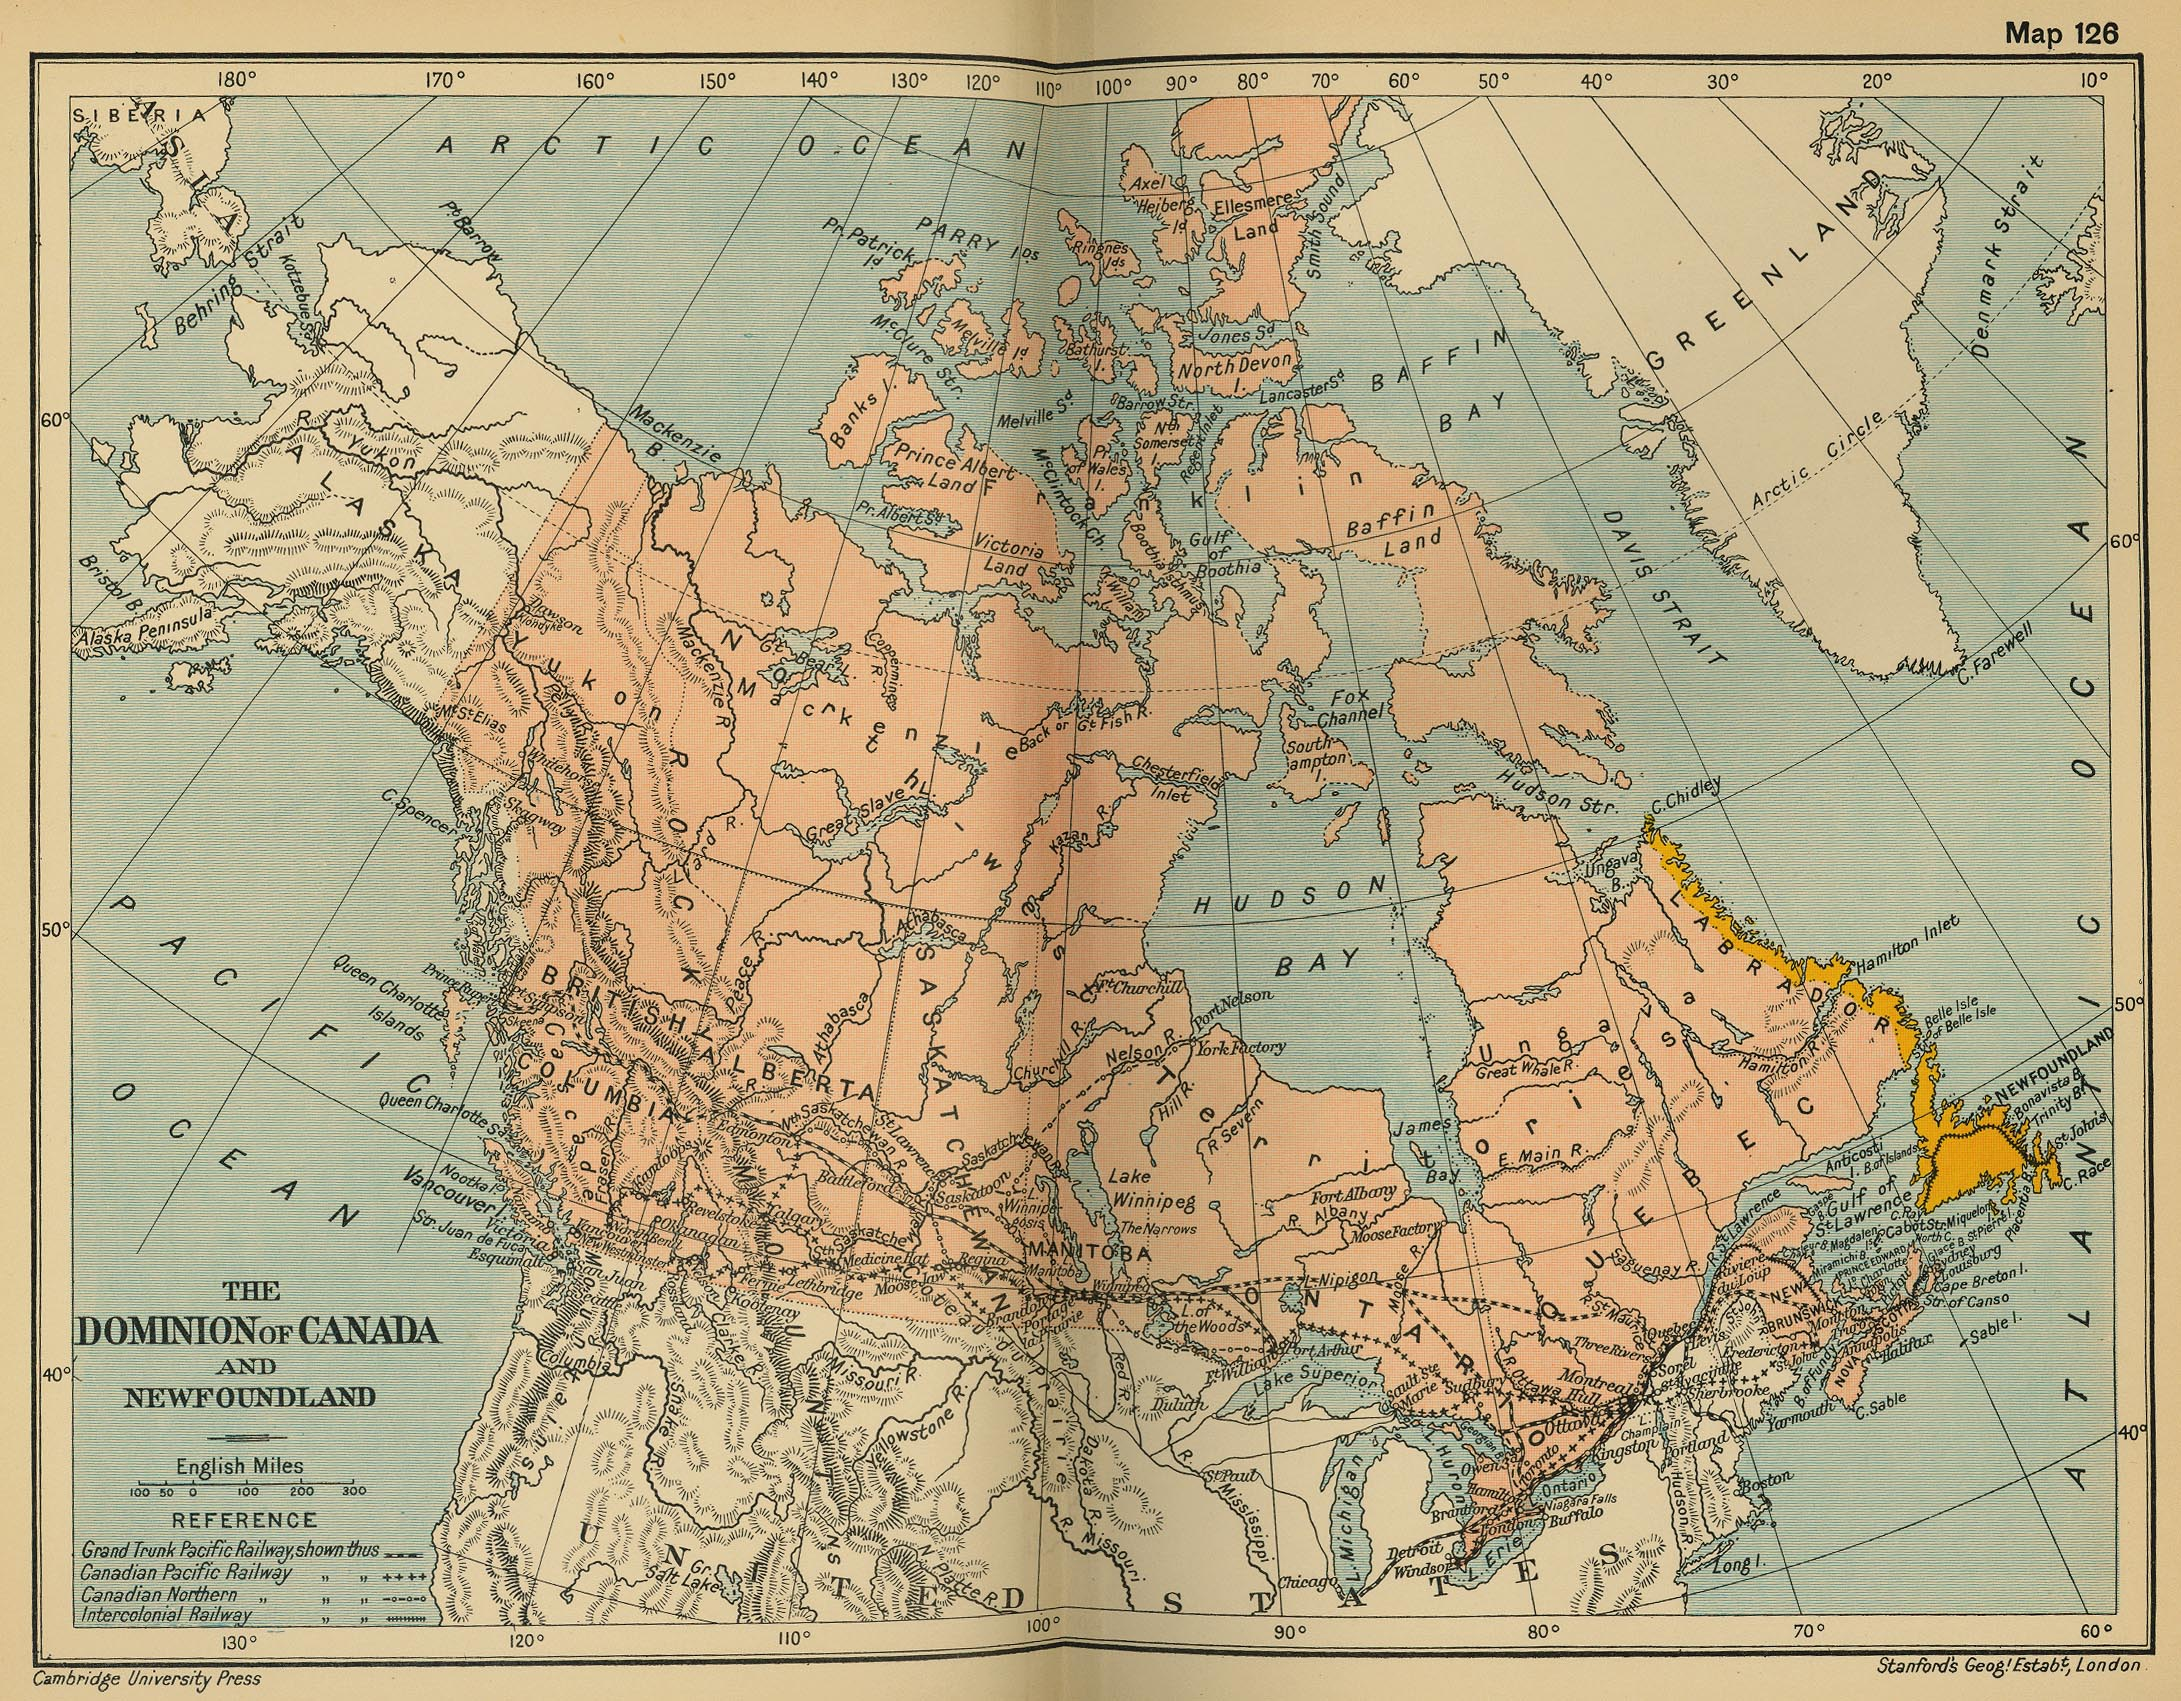 More historical maps of canada the dominion of canada and newfoundland cambridge modern history atlas gumiabroncs Images